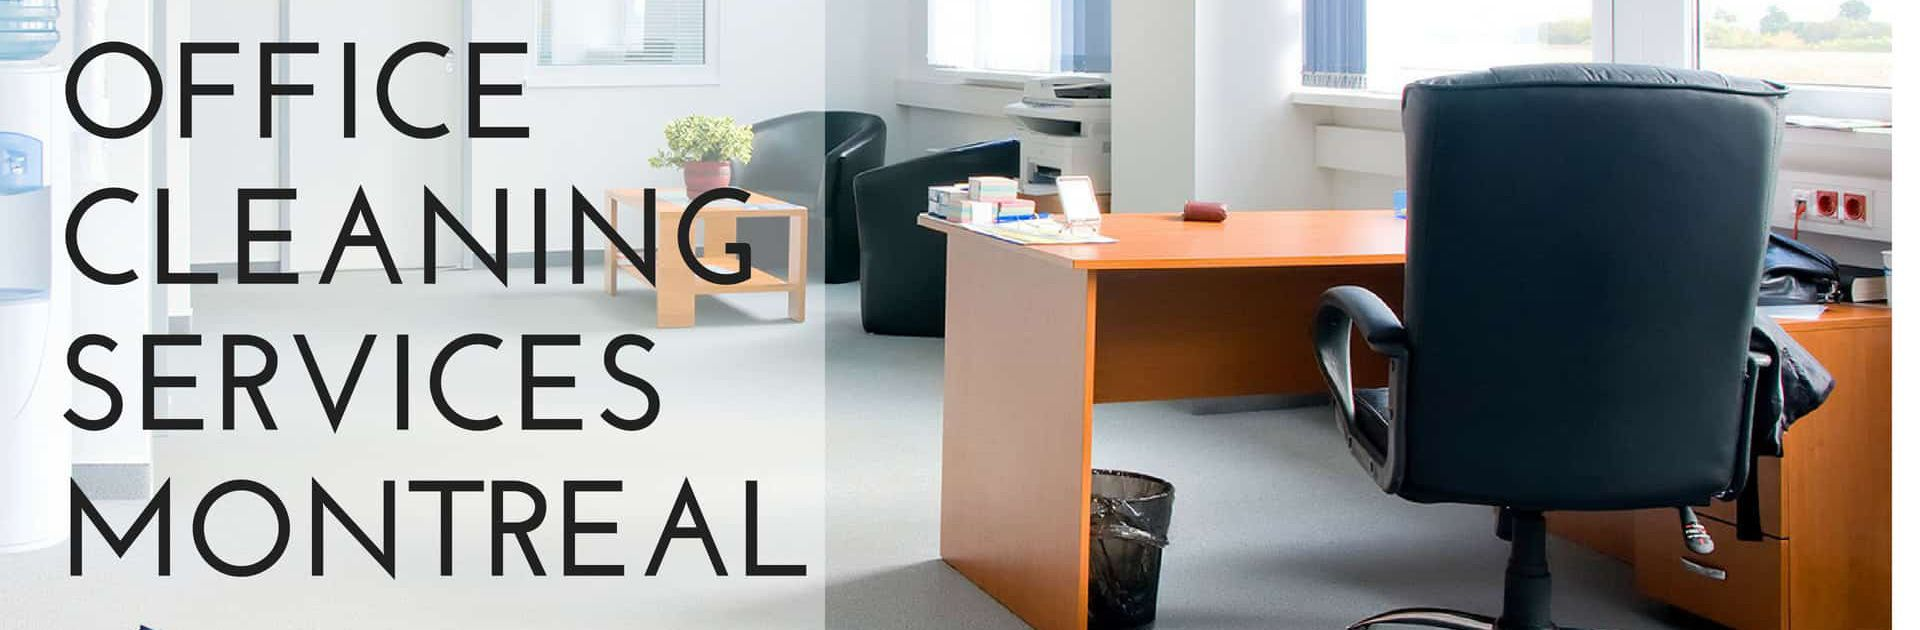 Small Office Cleaning Montreal Menage Total Cleaning Services With Images Clean Office Small Office Office Cleaning Services